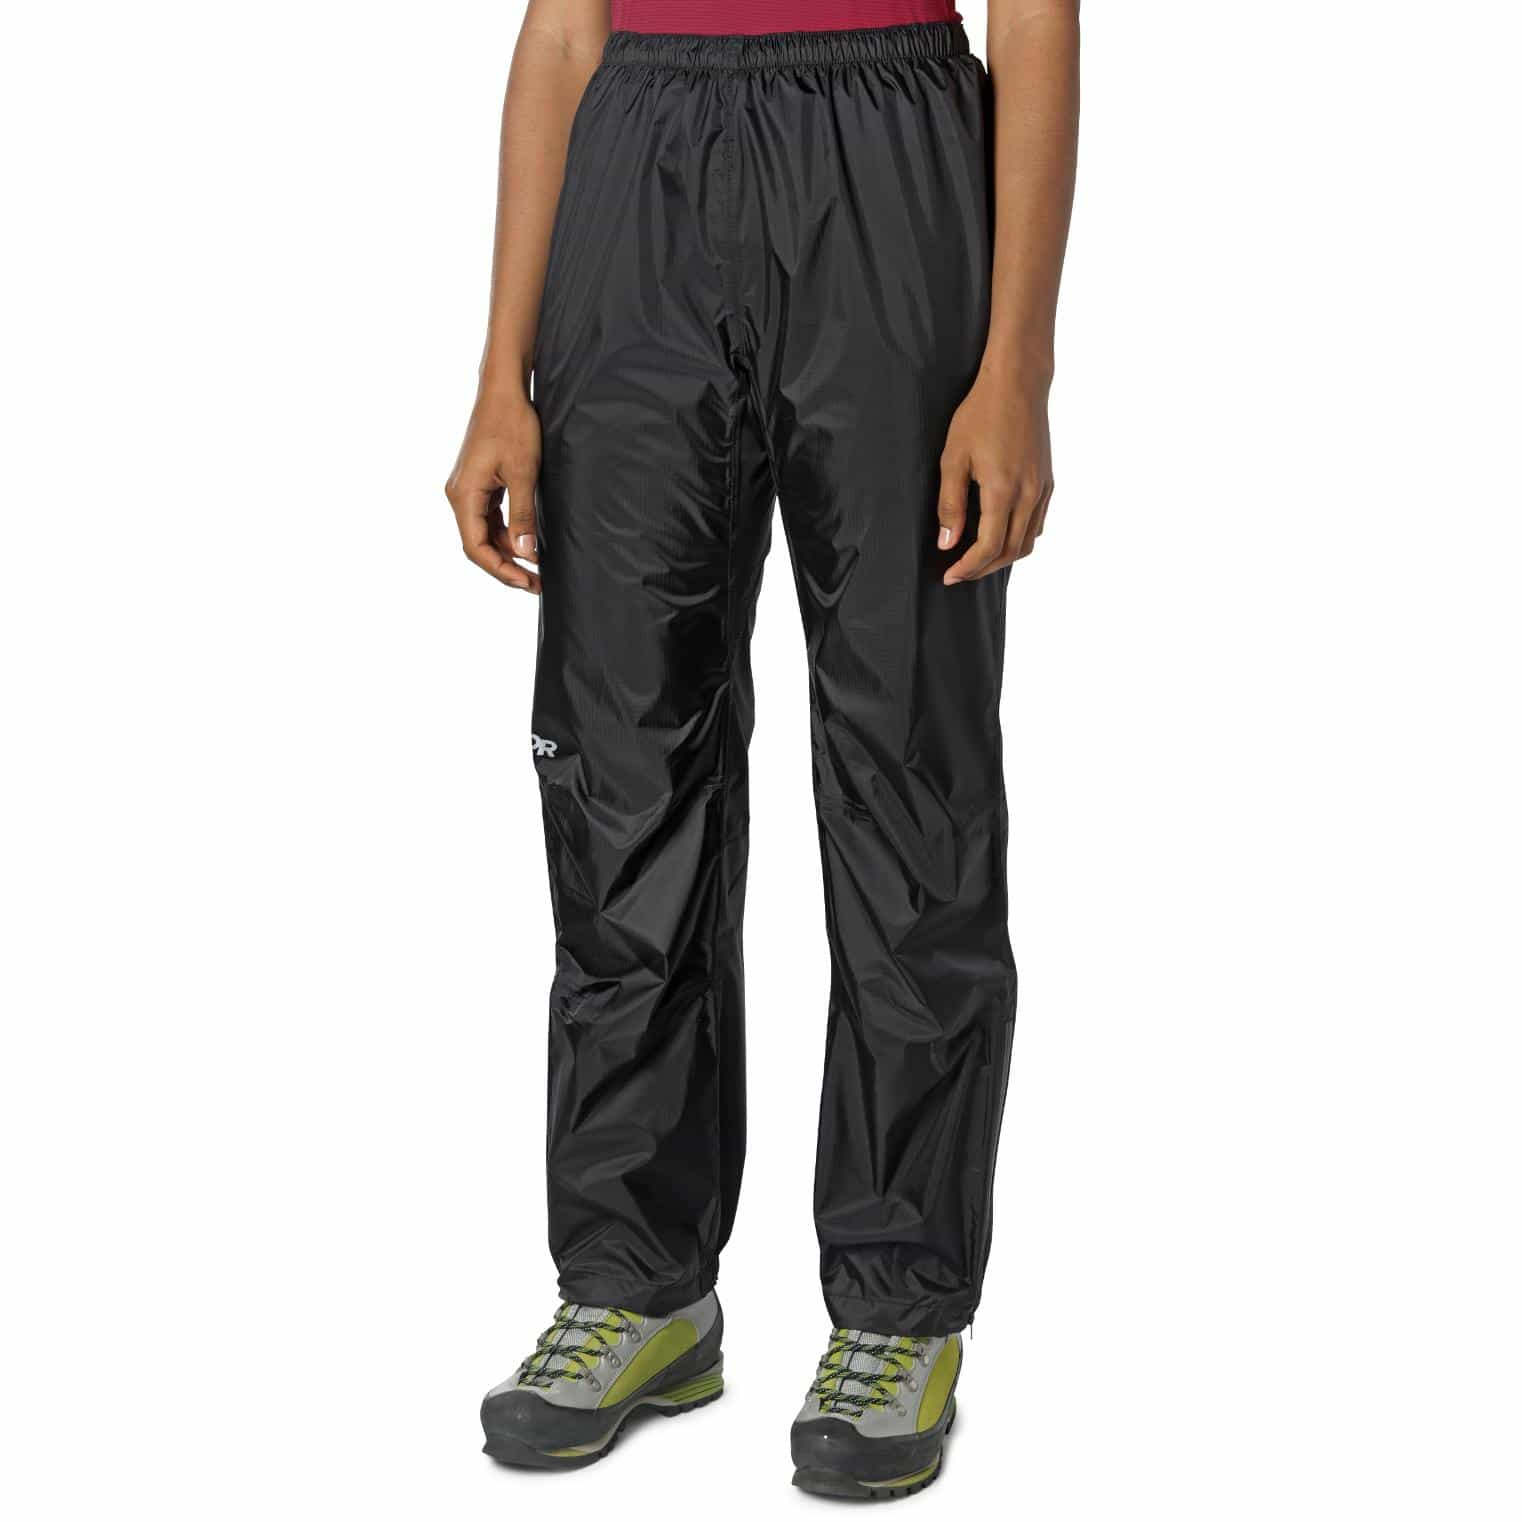 Outdoor Research-Helium Pants - Women's